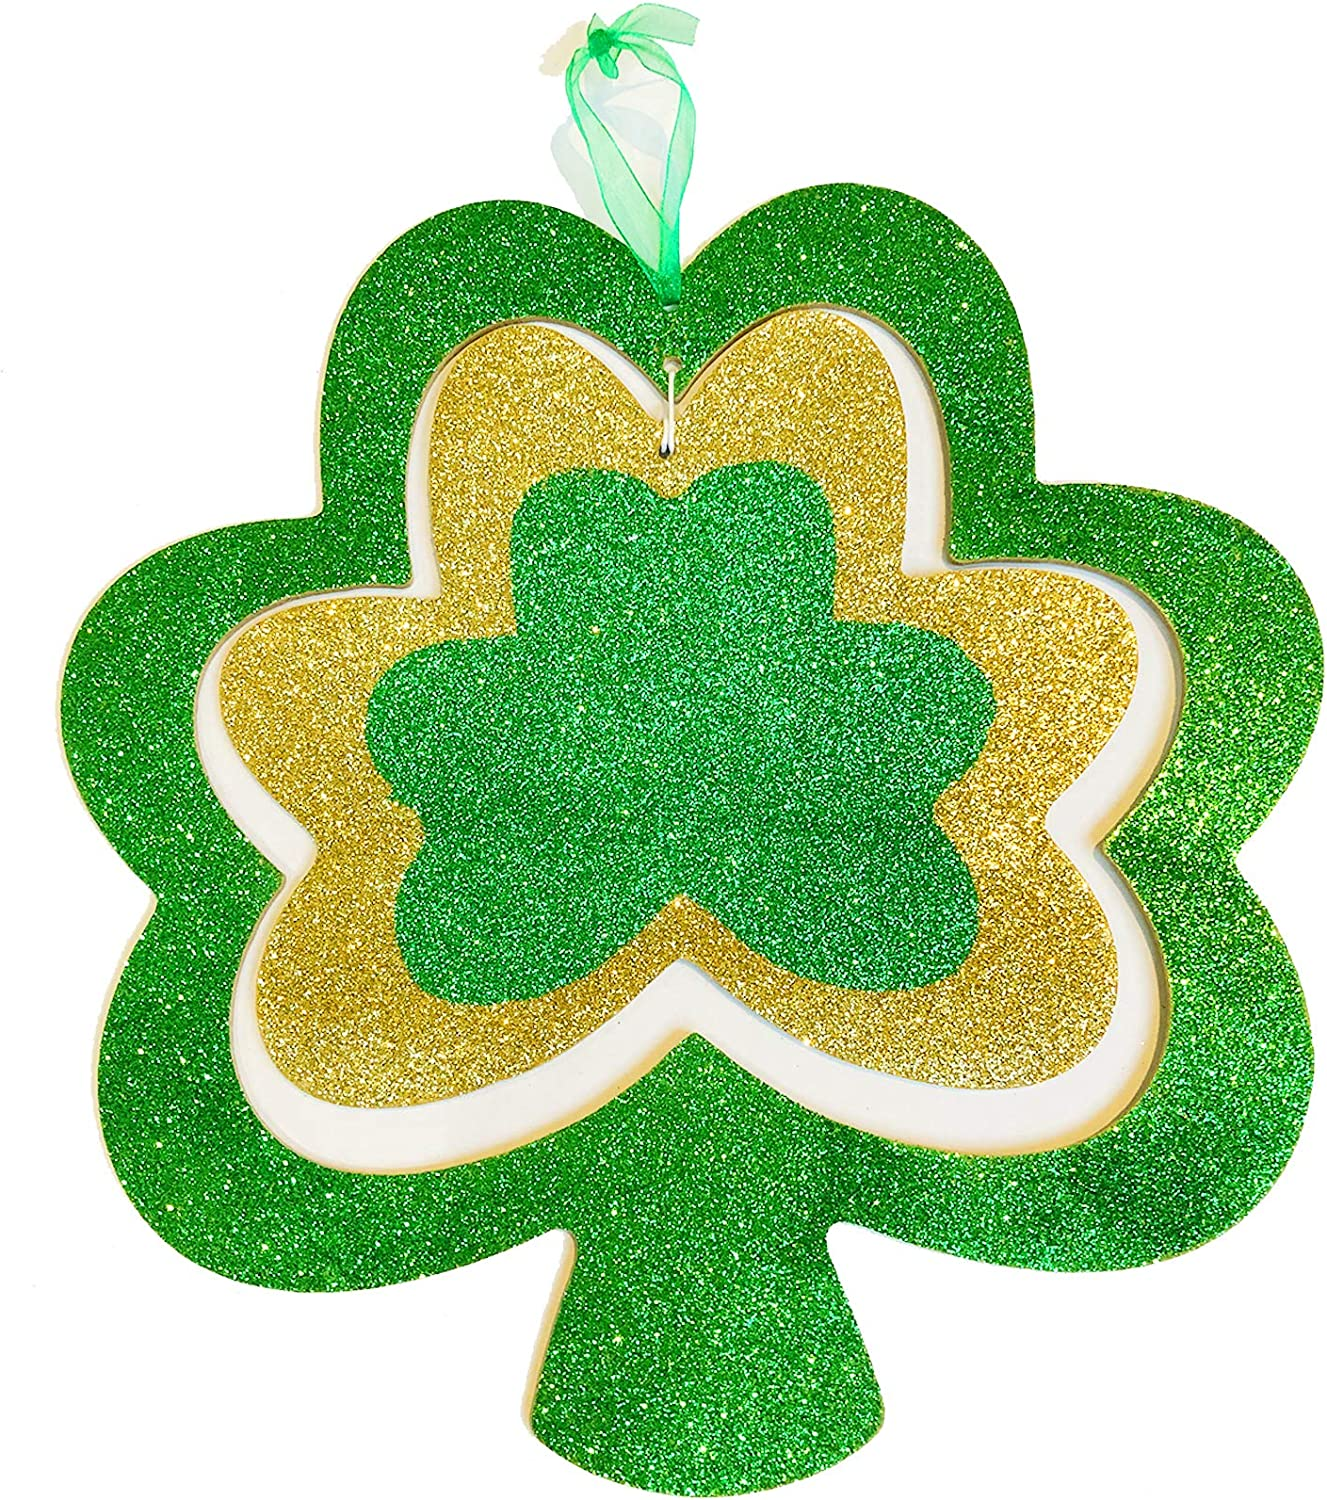 Shamrock Decor Hanging Sign St Patricks Day Decorations for The Home Irish Decor for Front Door Hanger Glitter Wooden Plaque Office Saint Patrick's Day Outdoor Room Wall Art Wood Porch Outside Gold